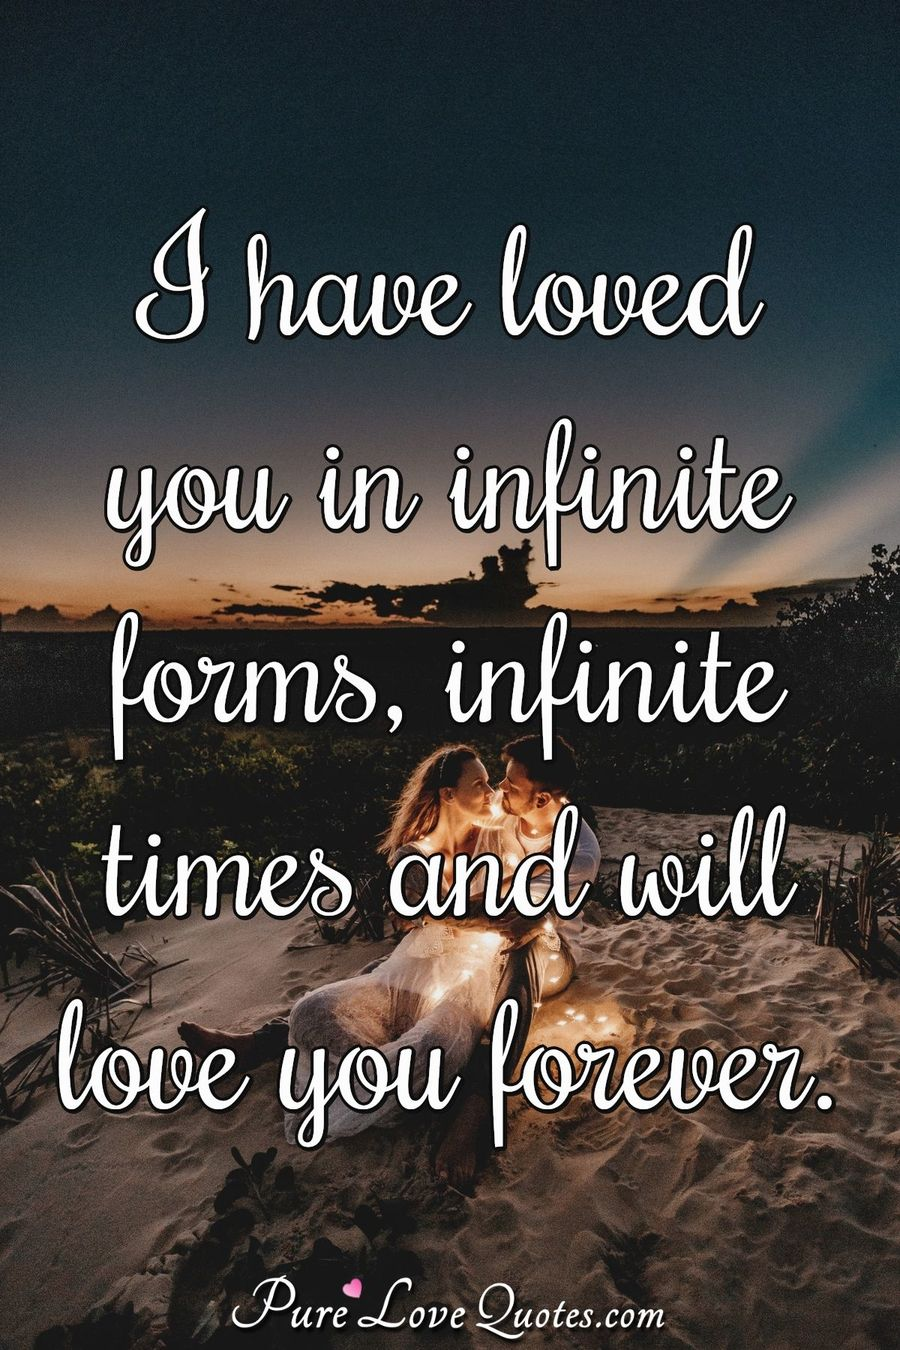 I have loved you in infinite forms, infinite times and will love you forever. - Anonymous